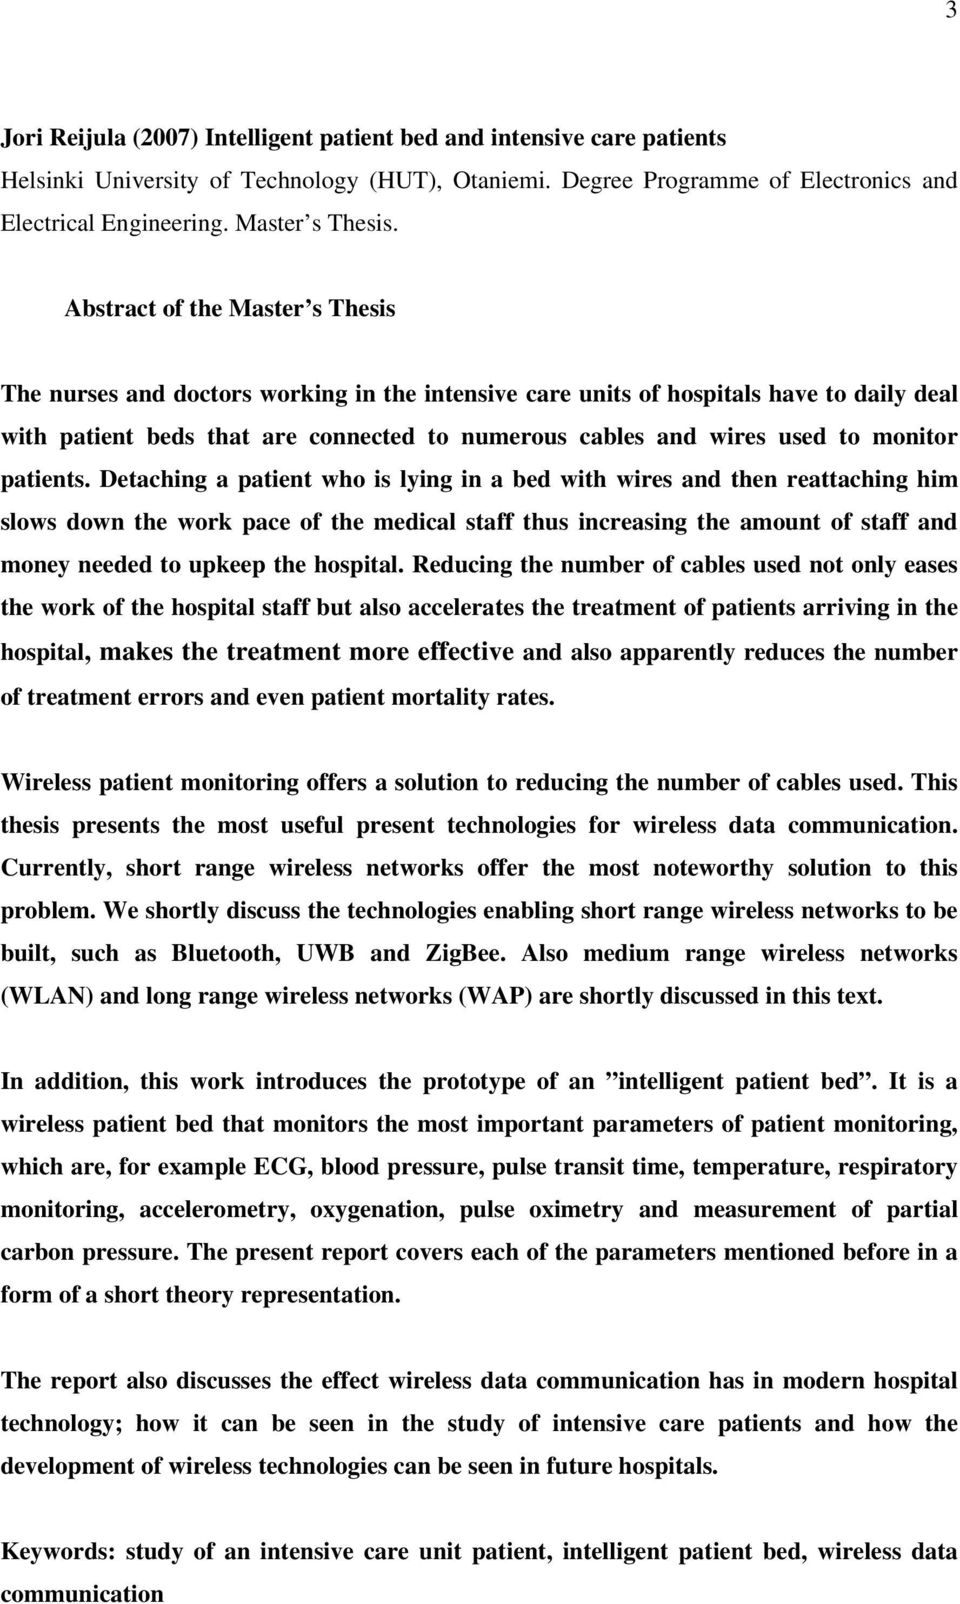 Abstract of the Master s Thesis The nurses and doctors working in the intensive care units of hospitals have to daily deal with patient beds that are connected to numerous cables and wires used to